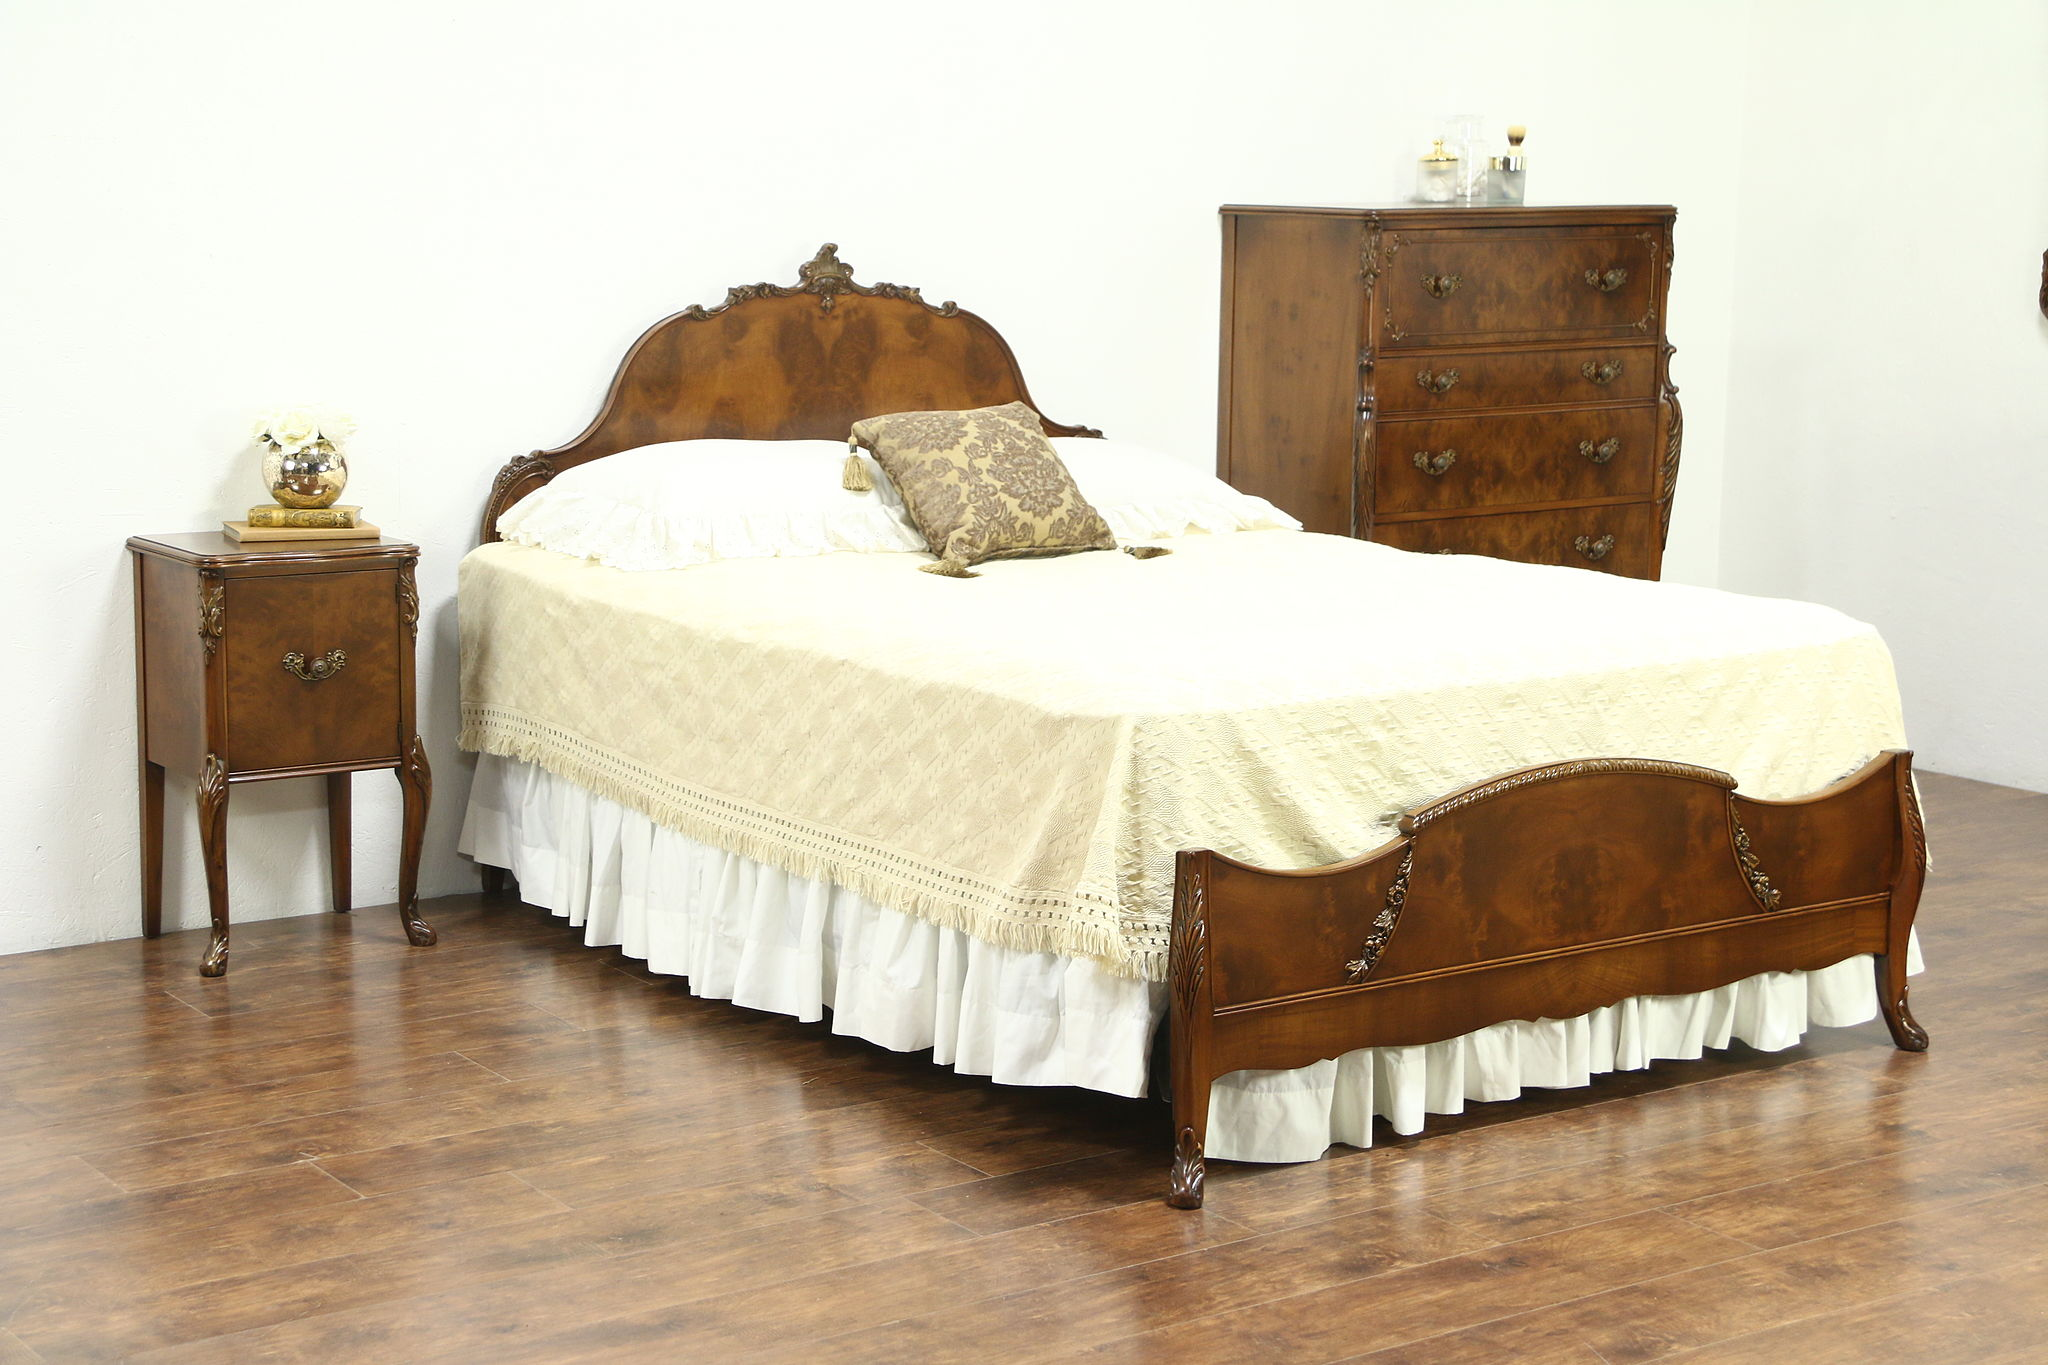 queen sets size king for at quality better ebay made in bed the click homeusa modern itm avantgardefurniture italy on bedroom volare picture set black